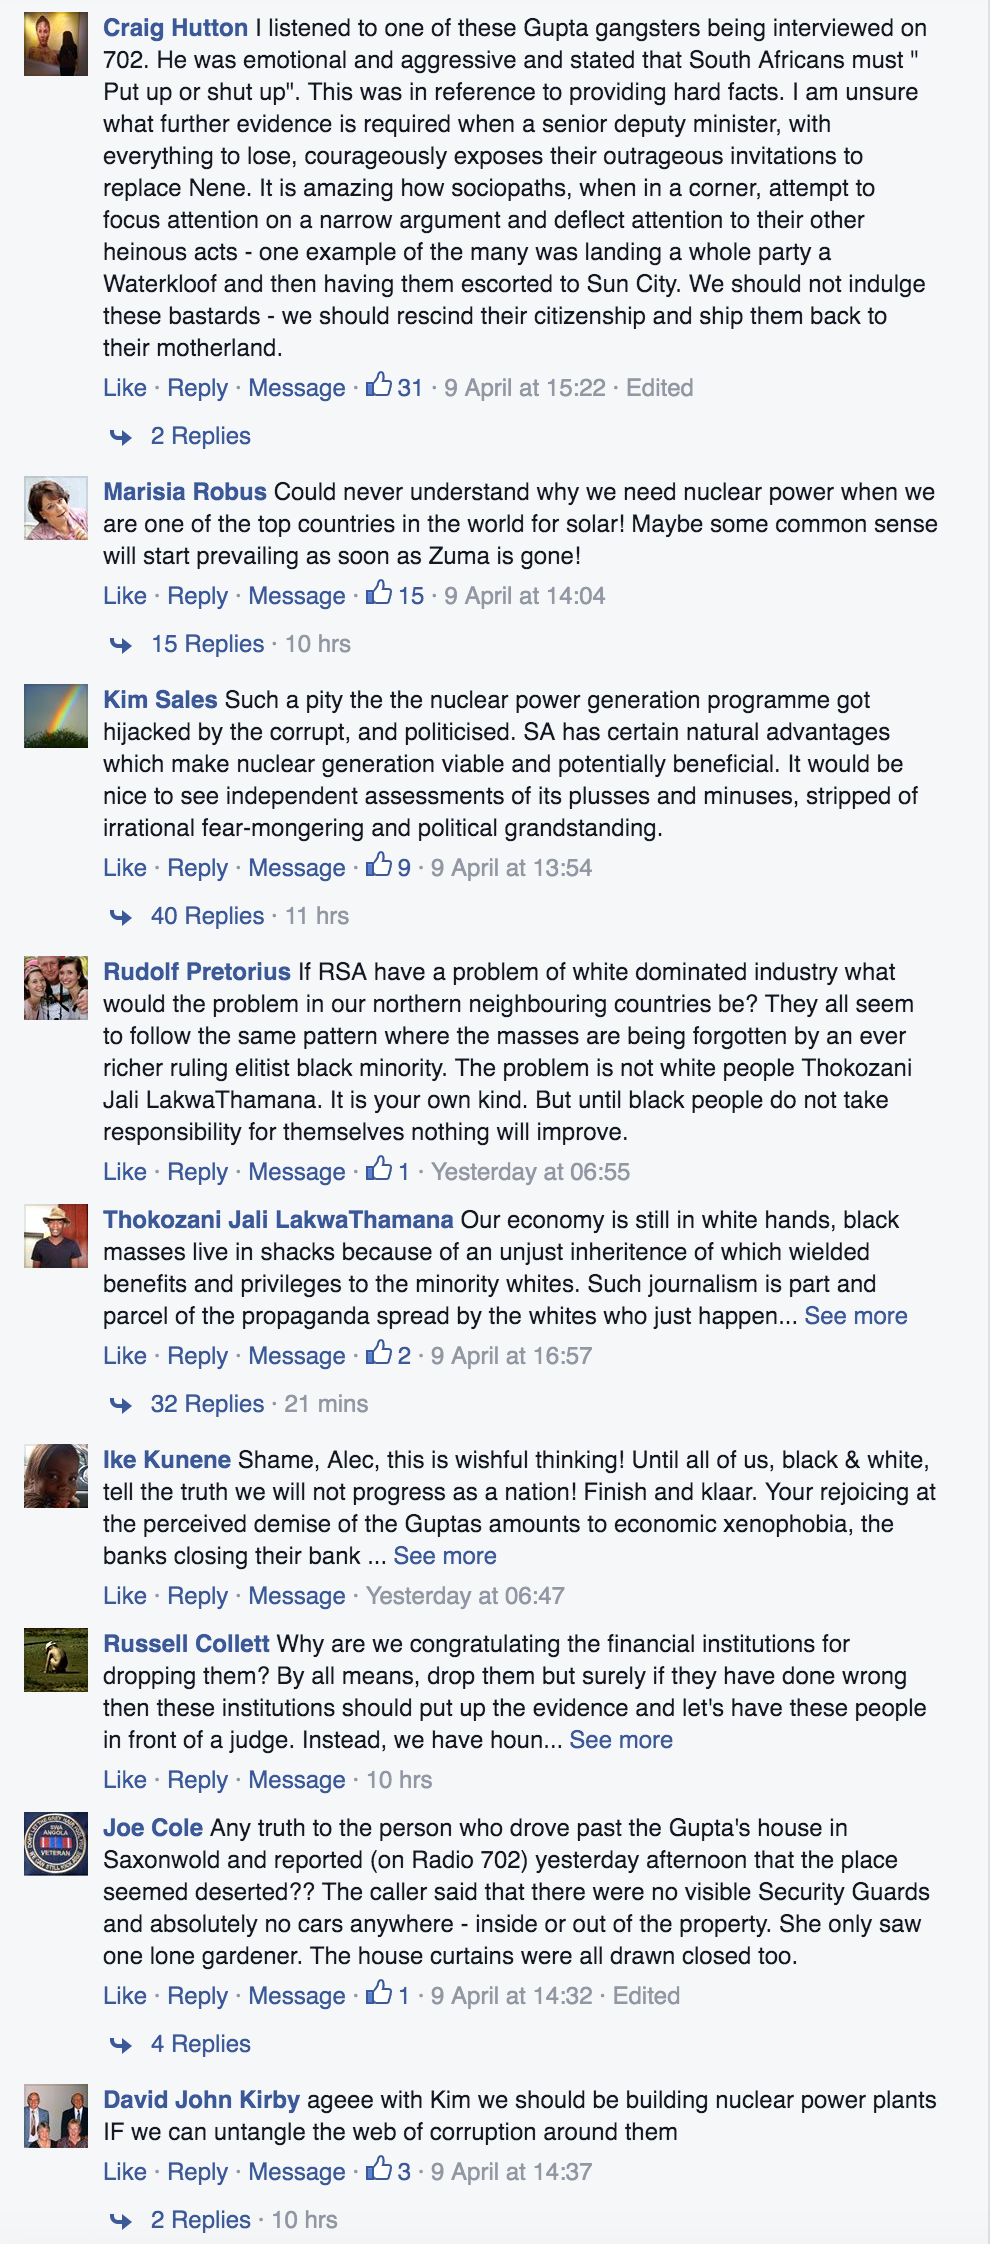 Some of the comments posted under the link to this story on Alec Hogg's Facebook page